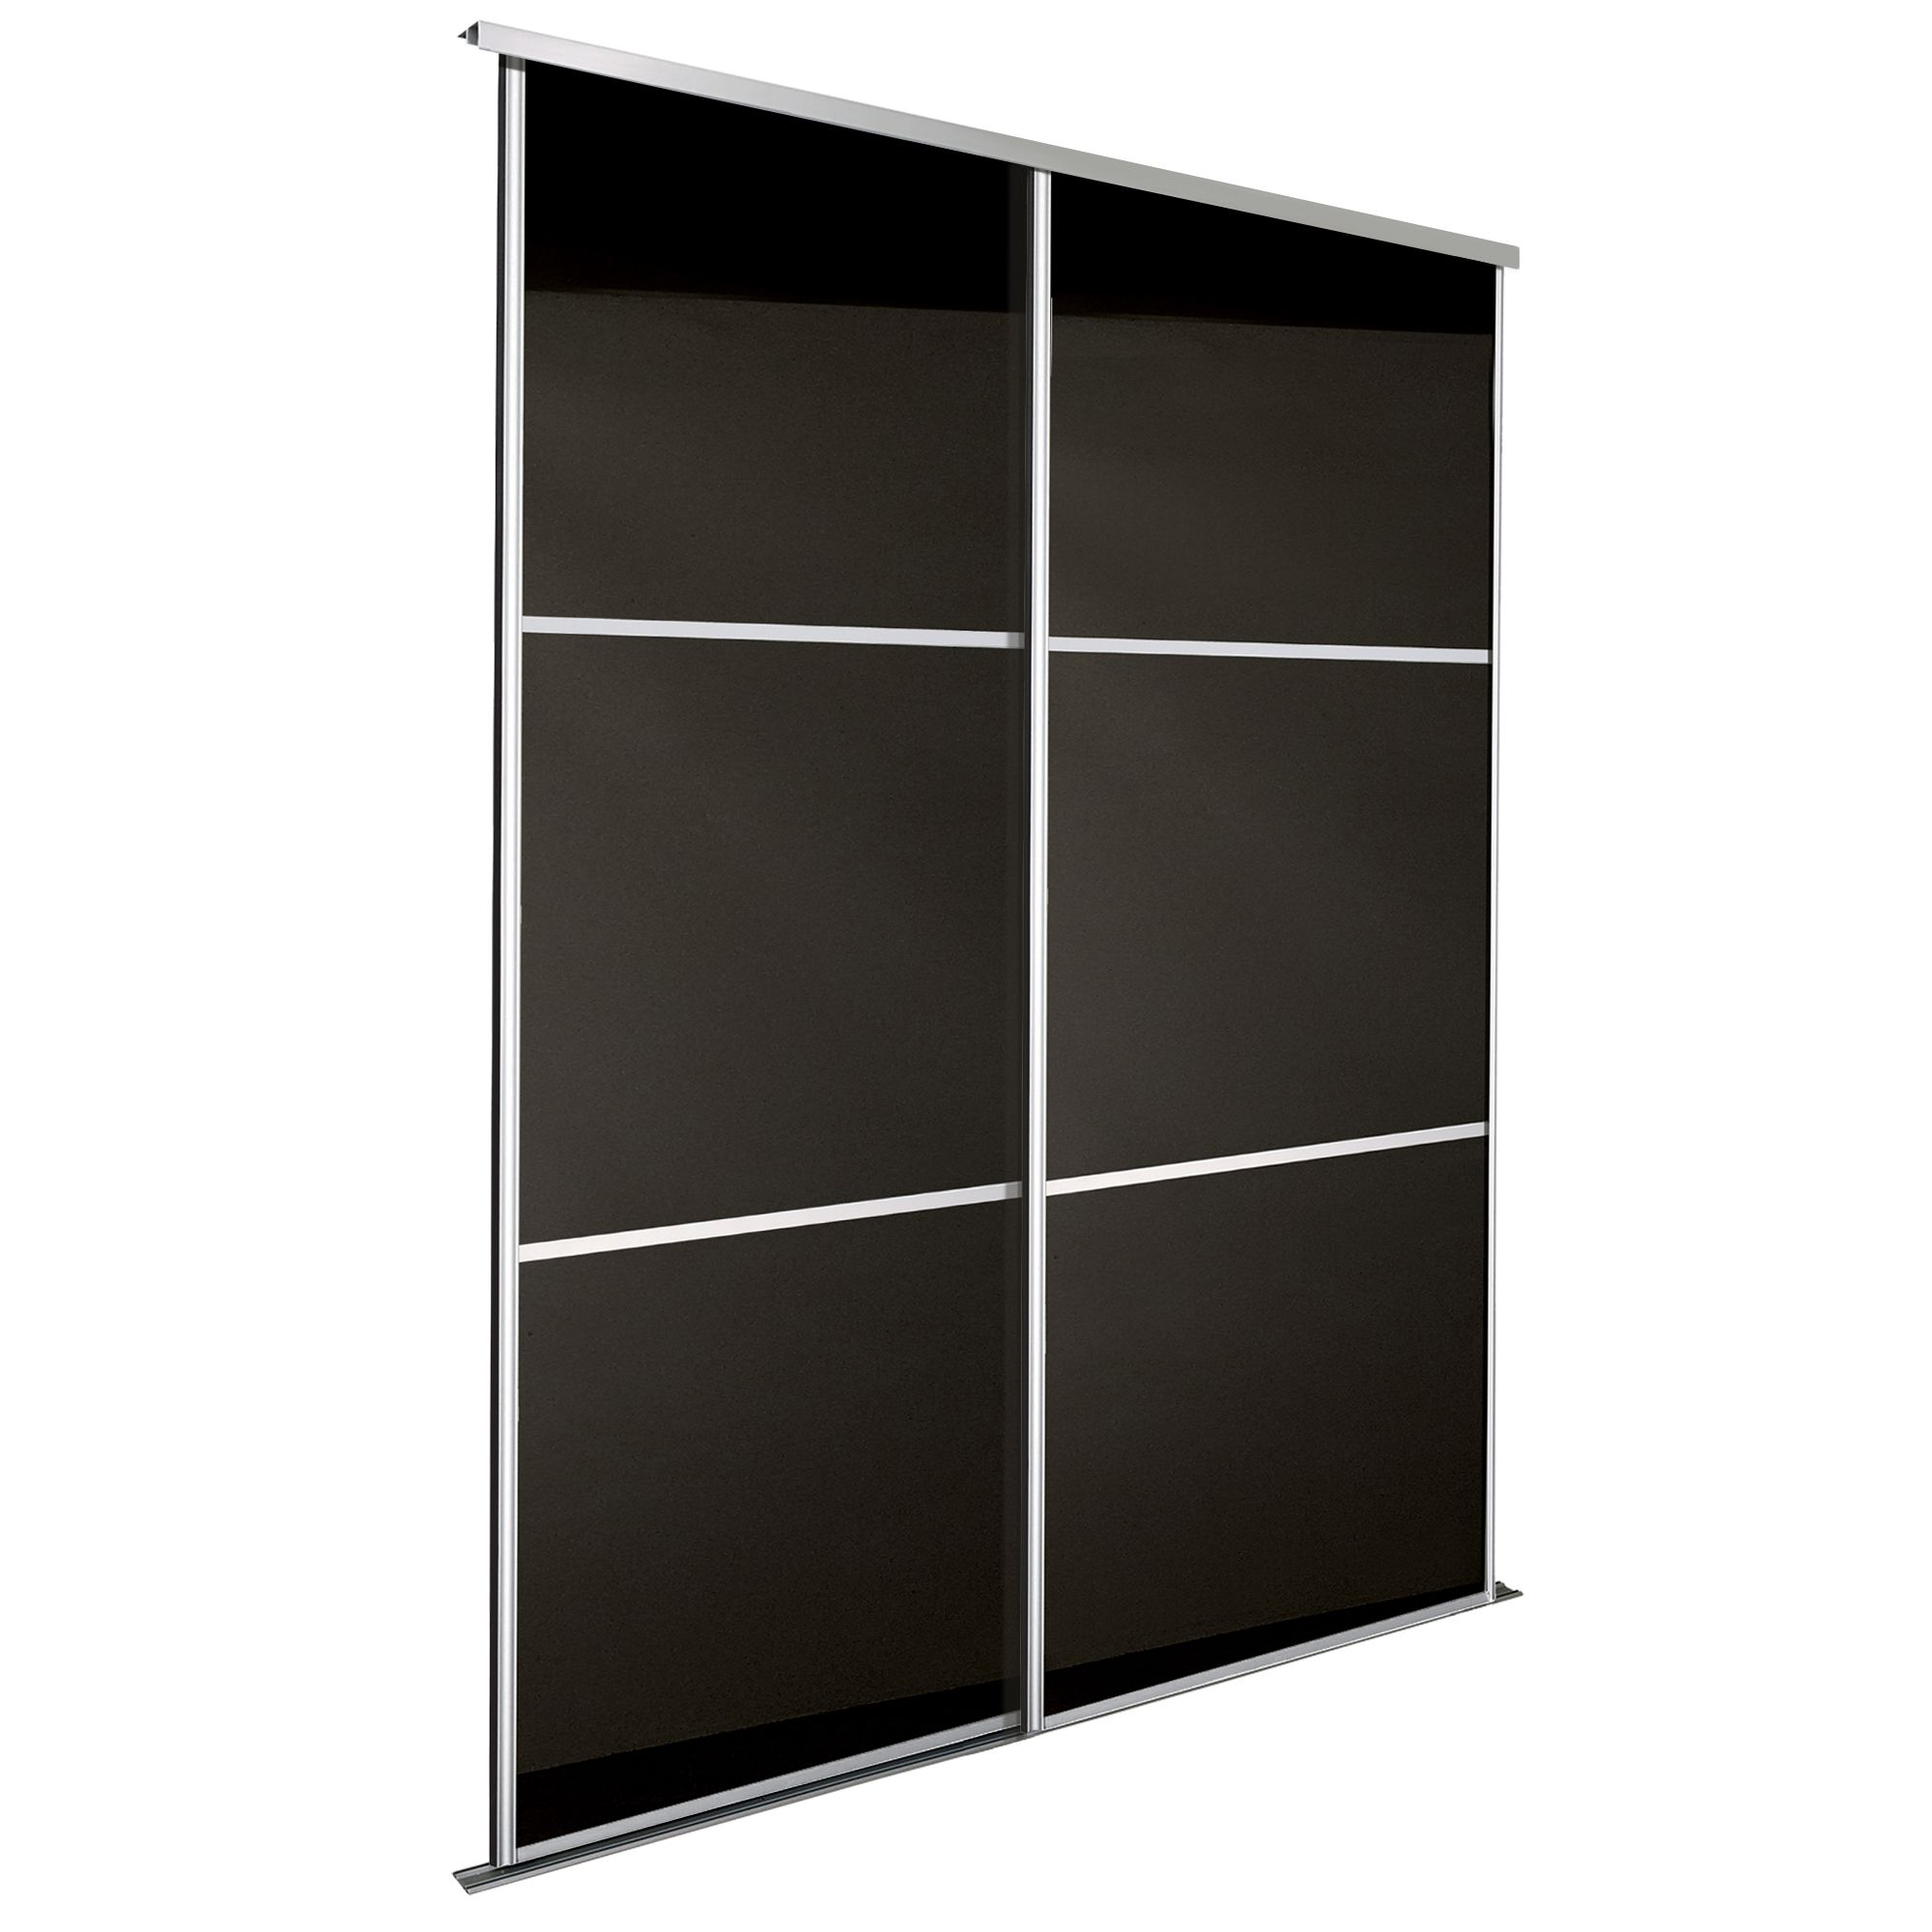 Premium Select Black Glass Effect Sliding Wardrobe Door Kit H2200